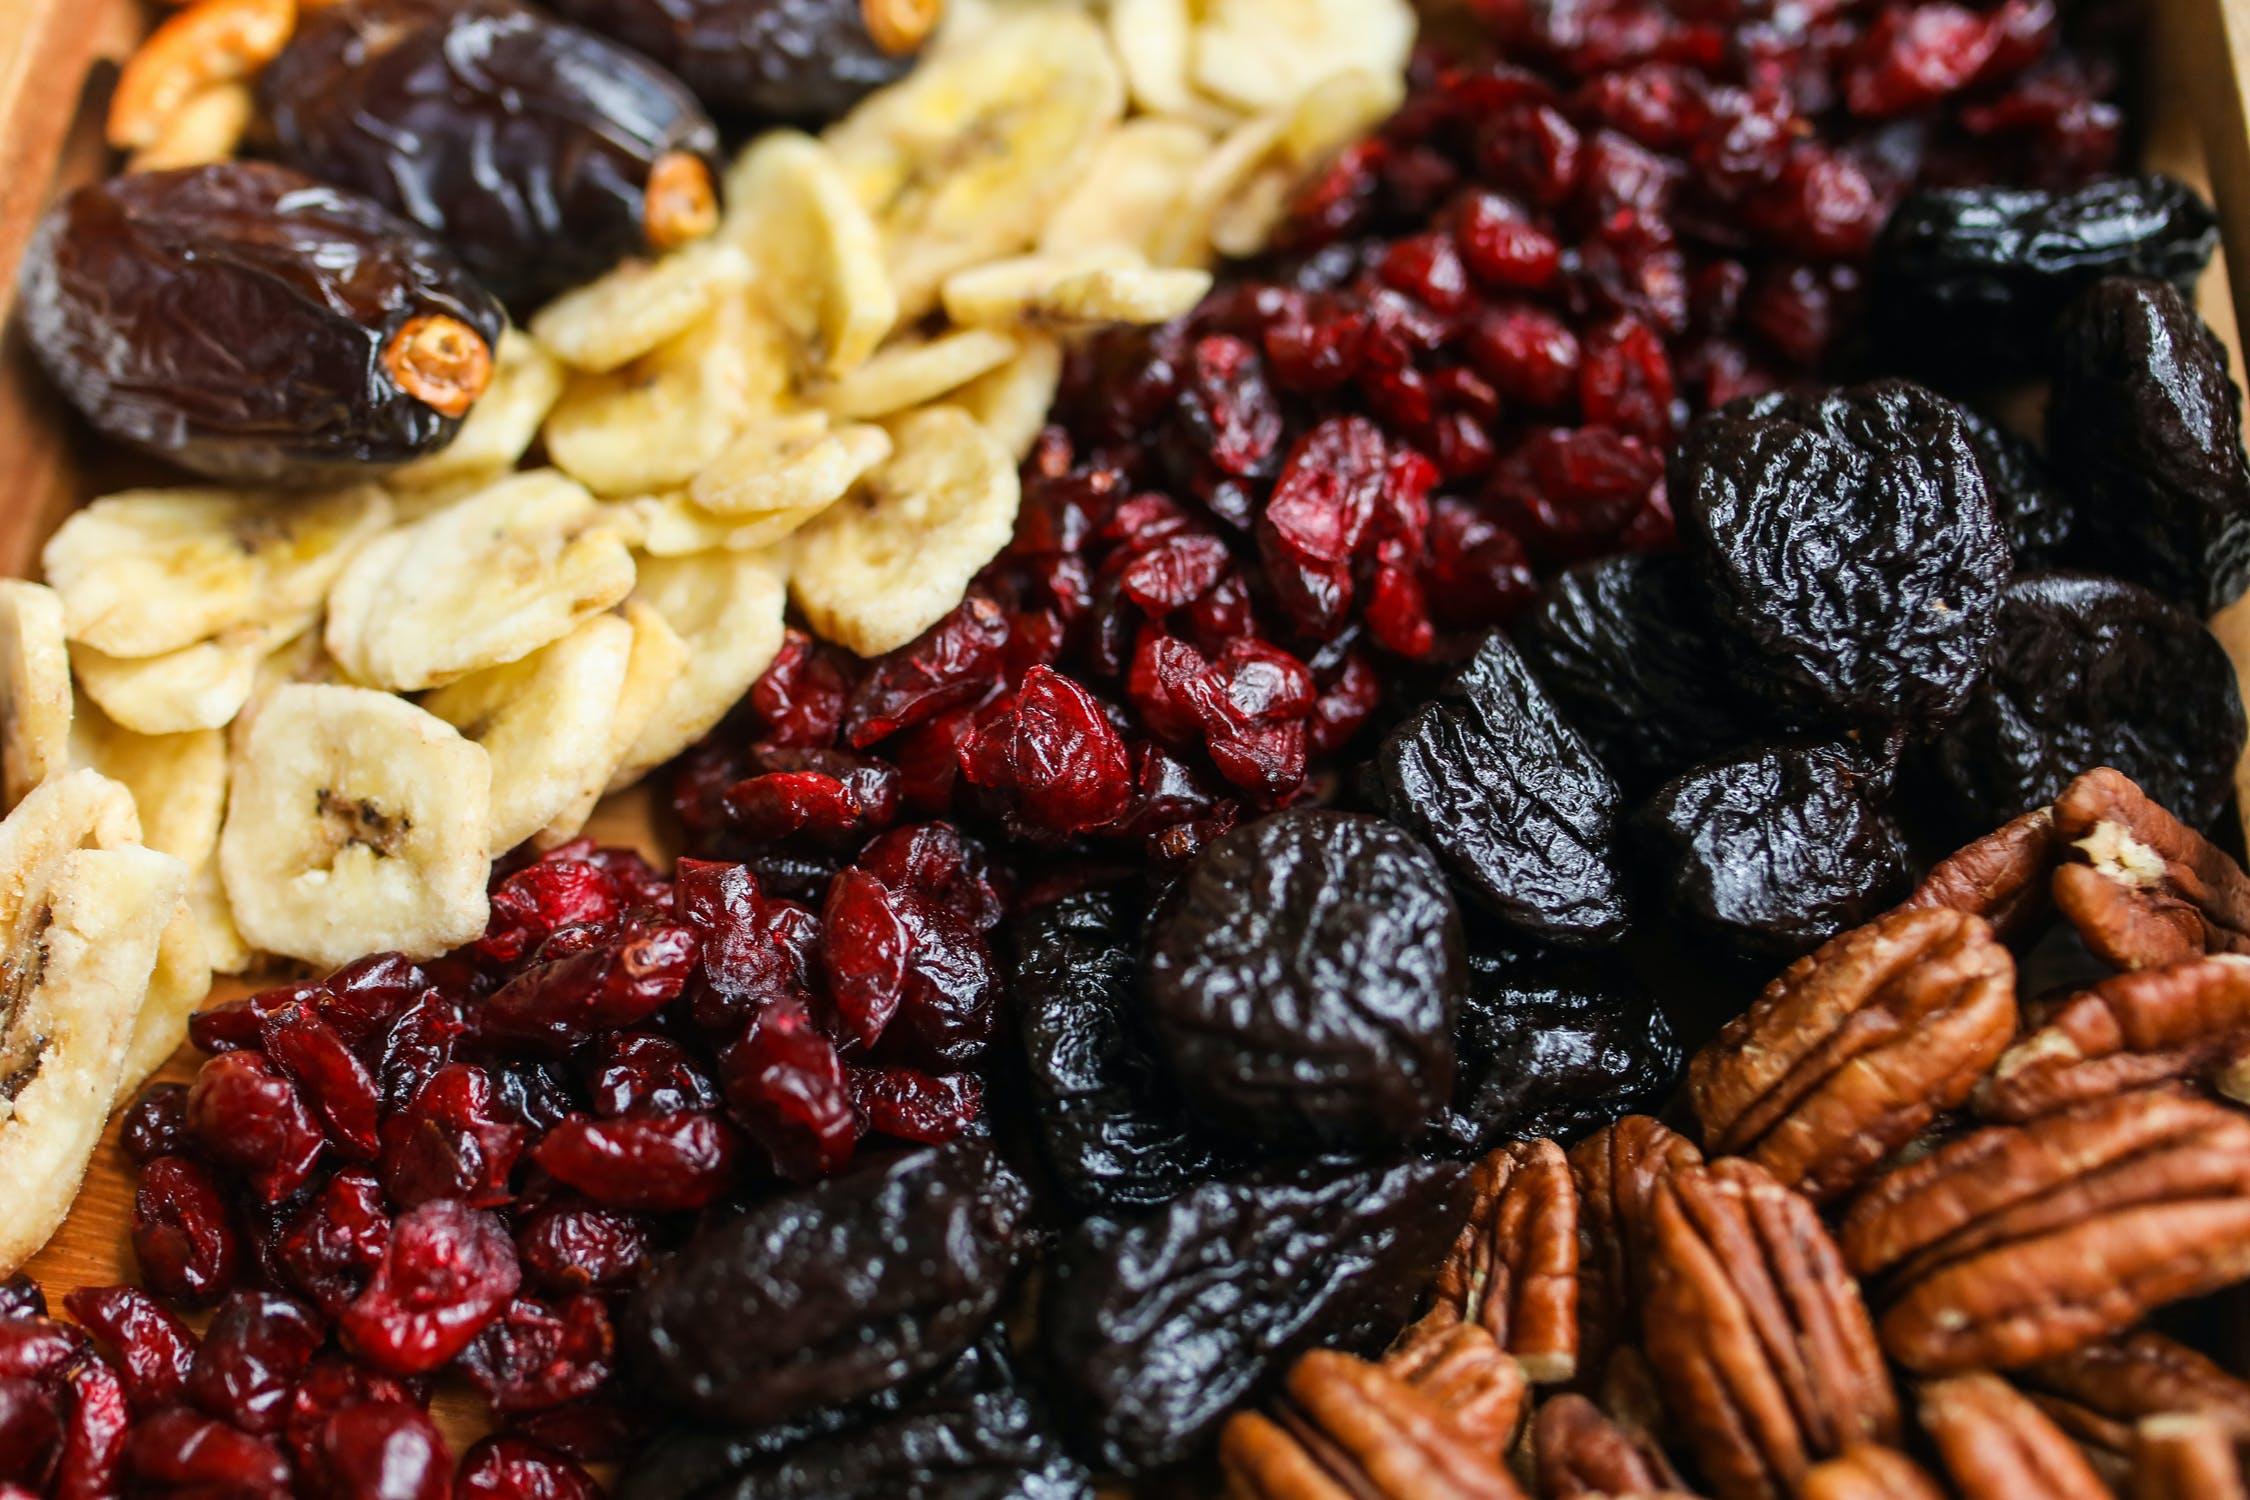 Which of these snacks will keep you full and healthy in between meals?